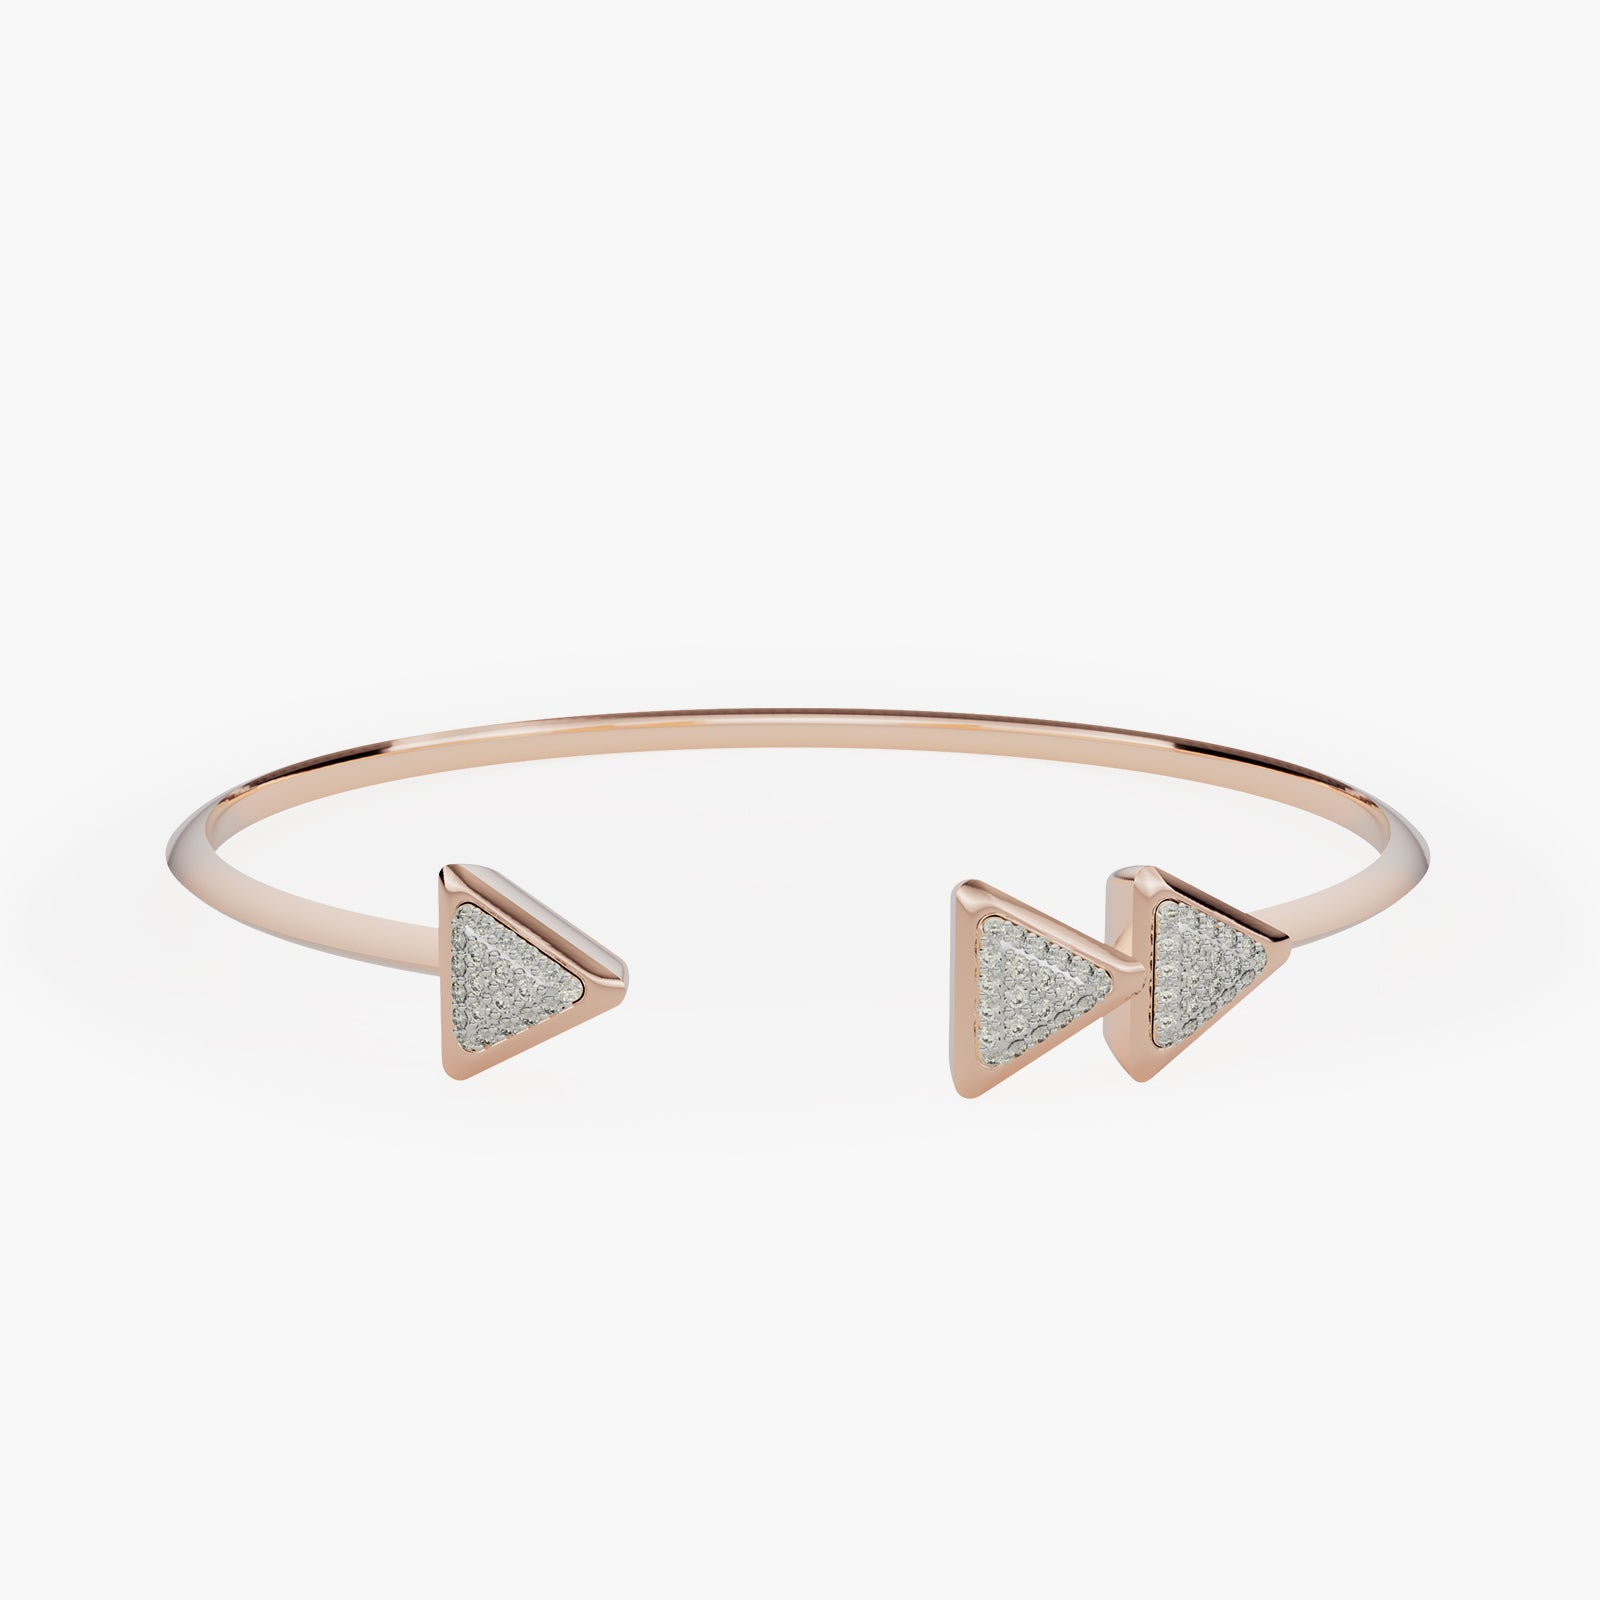 Bracelet Anniversary Dove Vai Forward Rose Gold Full Diamonds Pavé